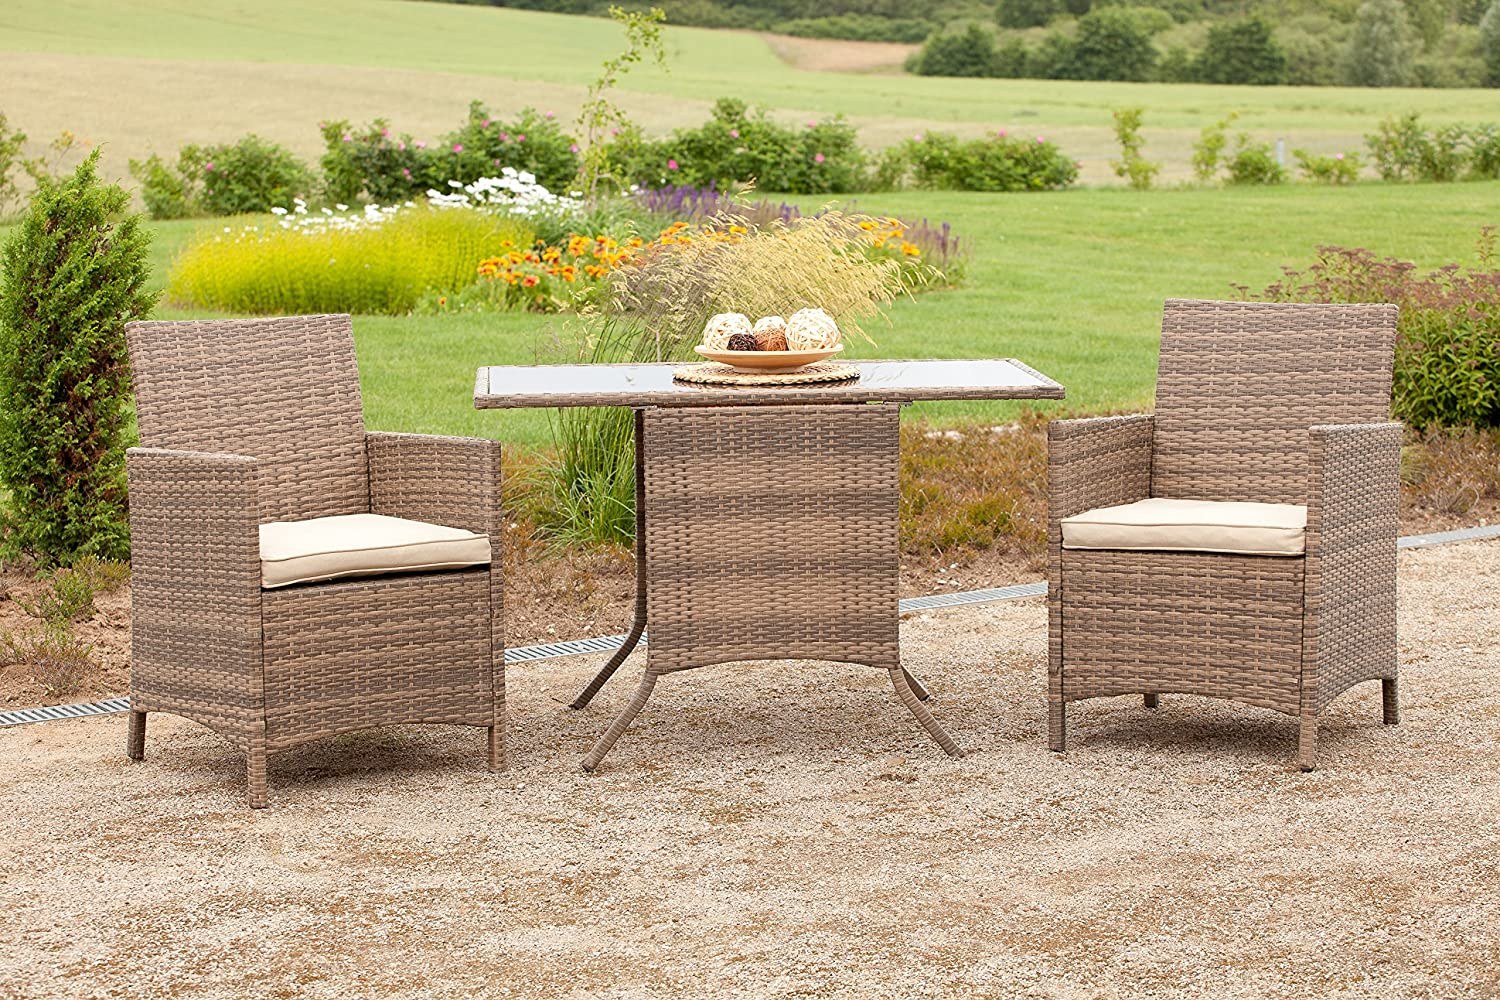 merxx balkonset treviso 2 sessel 1 tisch rattan gelflecht gartenm bel savanna grau gartenstuhl. Black Bedroom Furniture Sets. Home Design Ideas